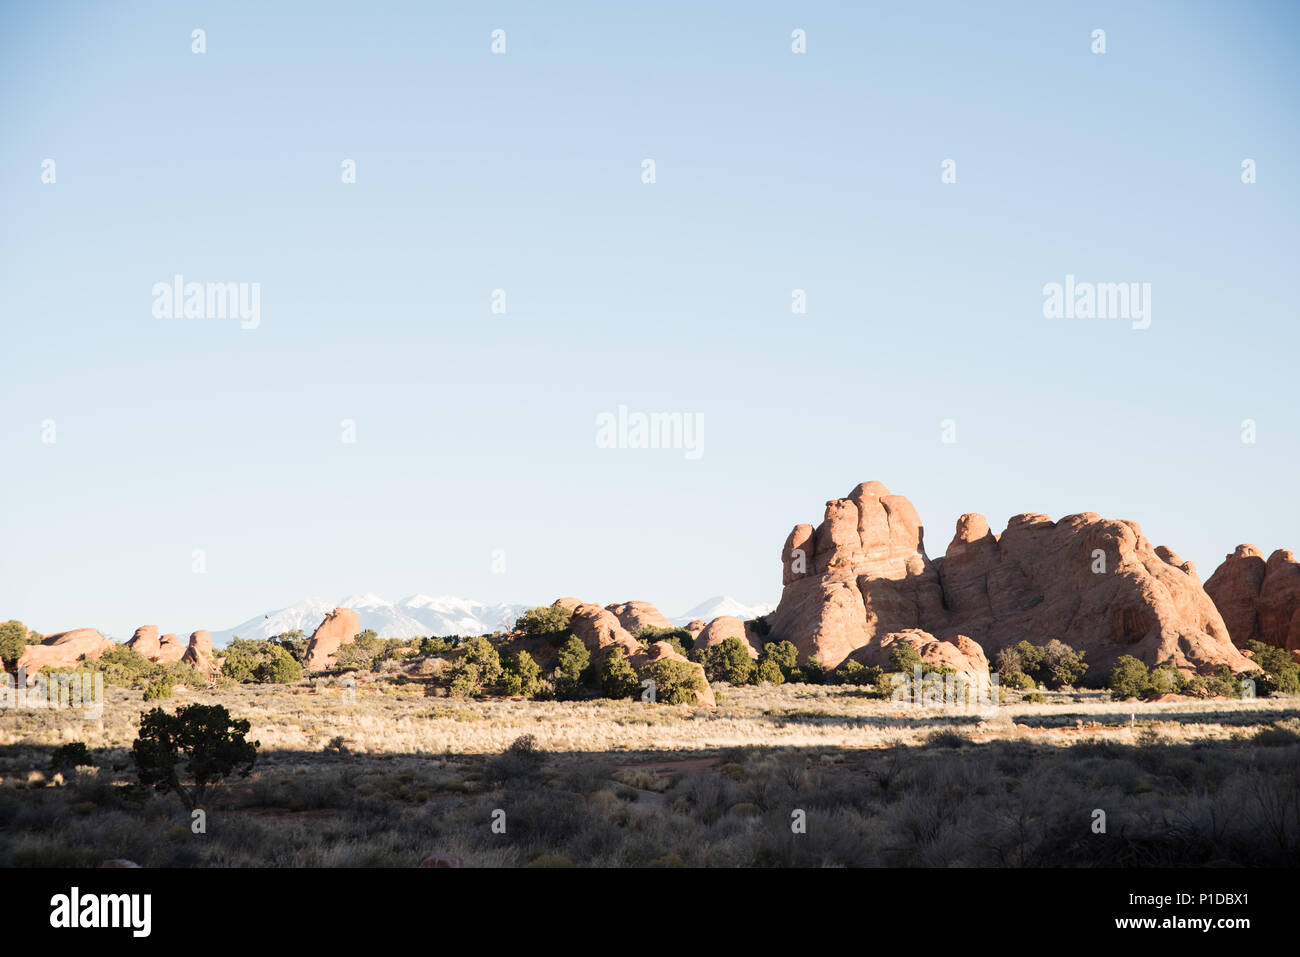 Landscape view of boulders at Arches National Park, Utah. - Stock Image